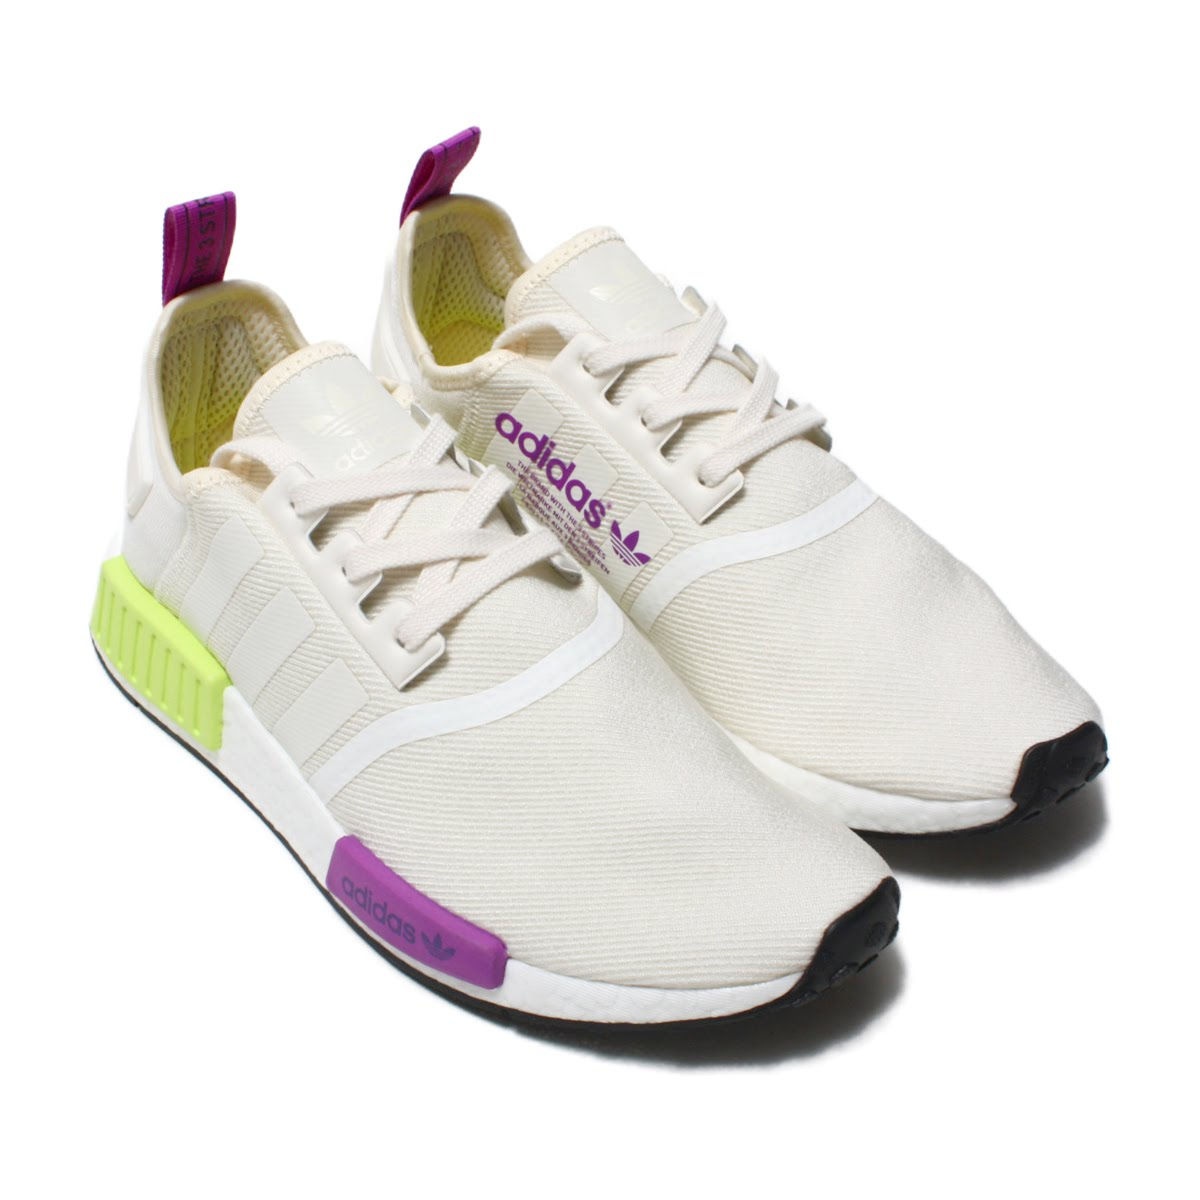 9188adb74 I blend the style of the outdoor gear with the origin of running shoes of  the 80s. NMD that wore polish and modishness. Mid sole superior in knit  upper ...